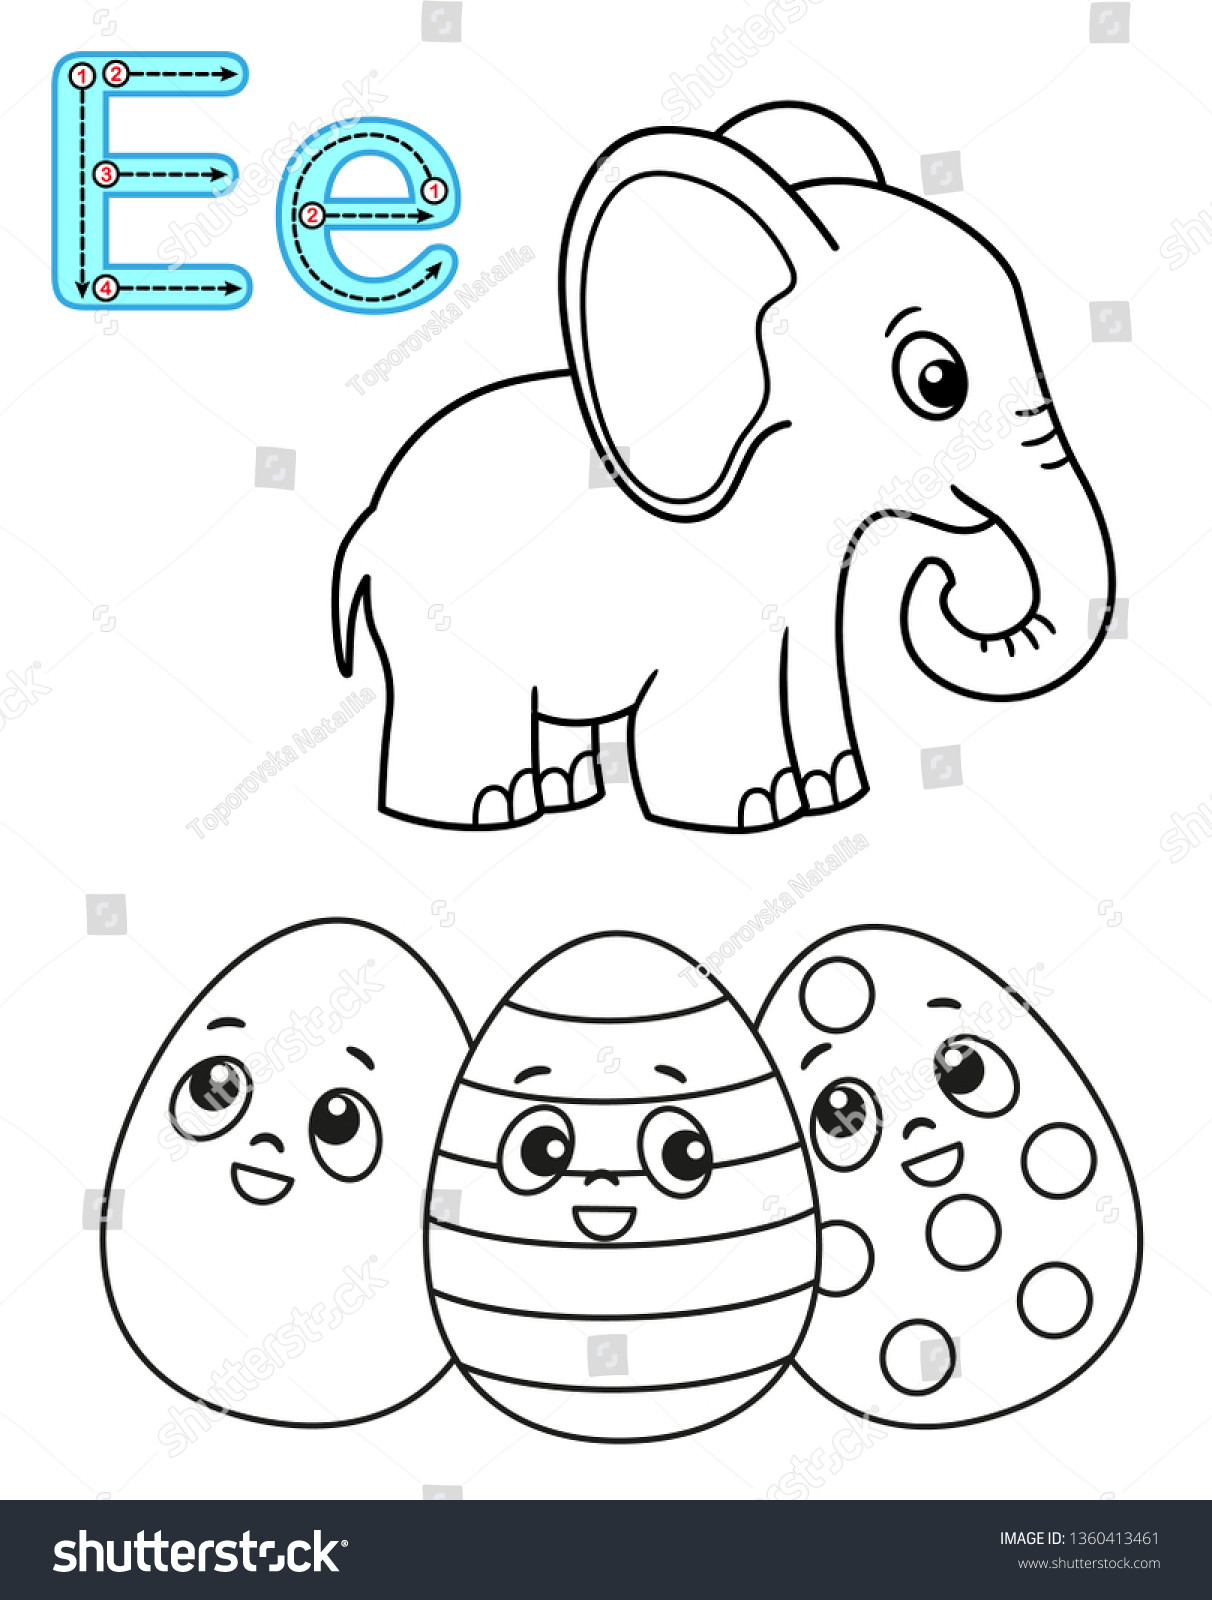 5 Animals Worksheets For Kids Kindergartens